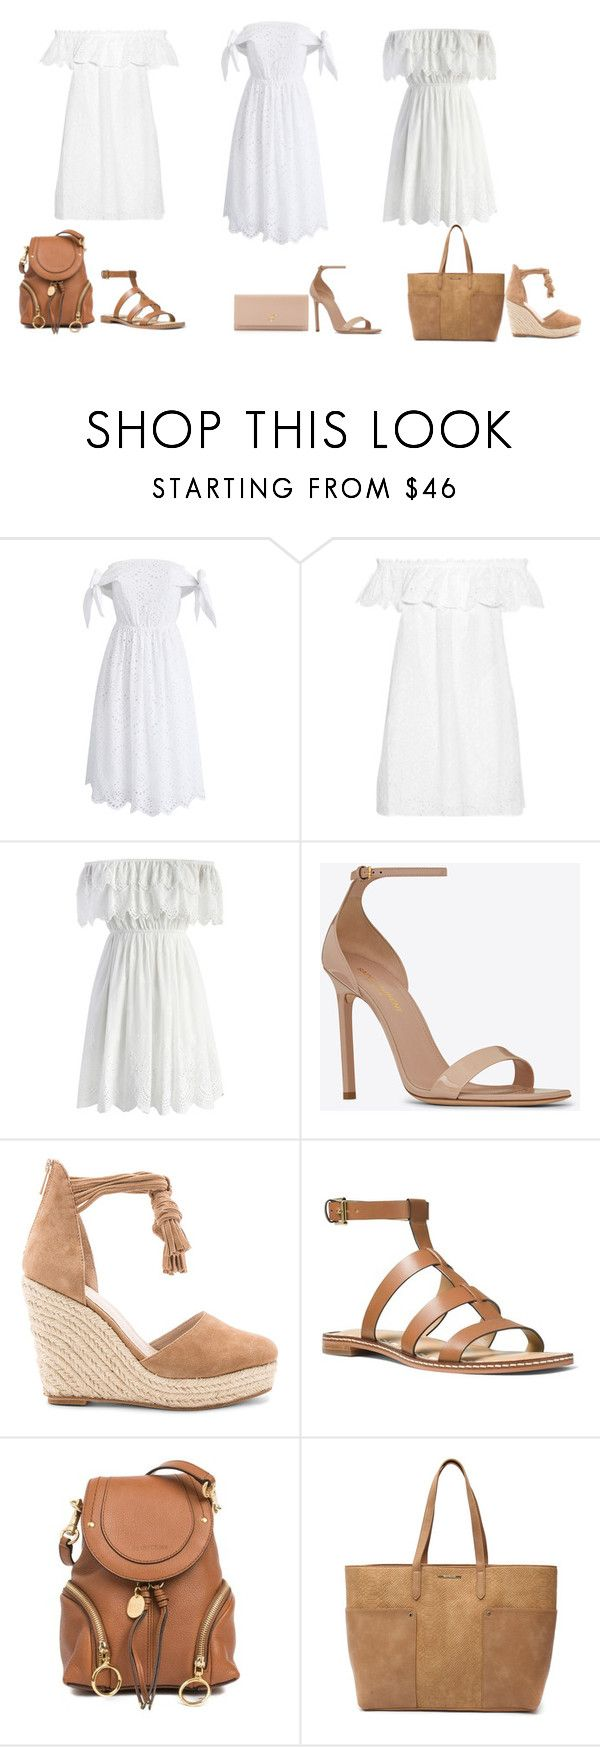 """How to Look Great in Summer Dress"" by olyacreative on Polyvore featuring Chicwish, Tory Burch, Yves Saint Laurent, Raye, MICHAEL Michael Kors, See by Chloé, Tony Bianco and Prada"